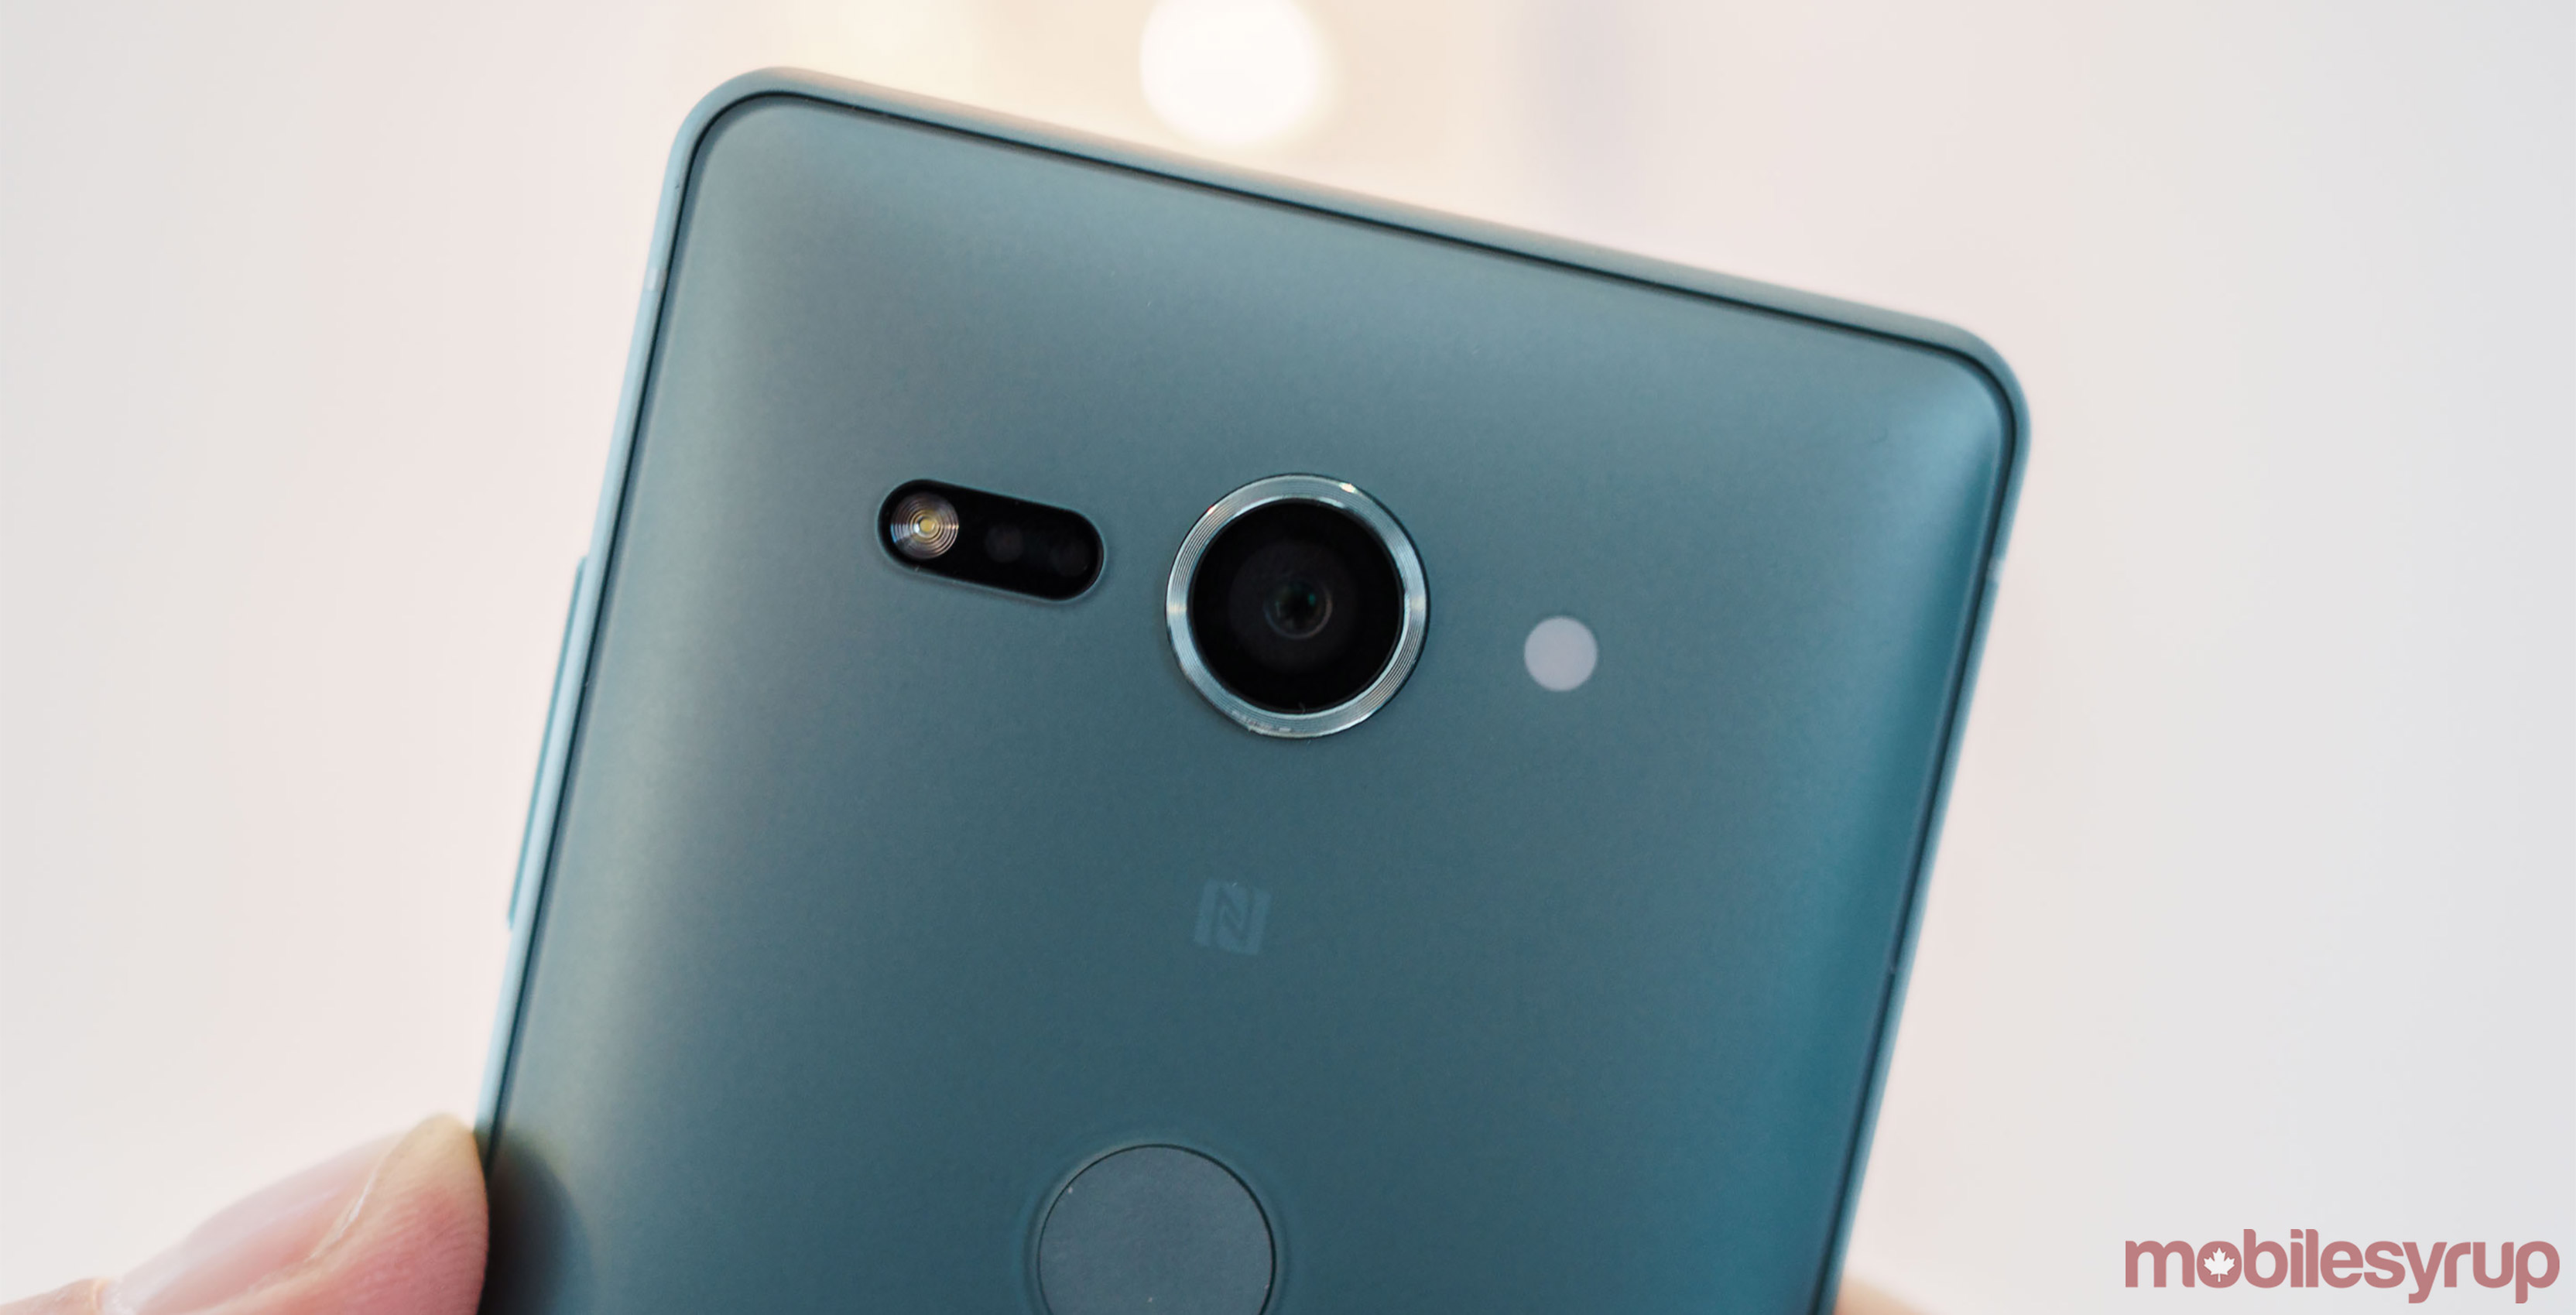 Sony Xperia Xz2 To Hit 1gbps Download Speeds On Bells Lte Advanced Advance Speaker Portable Komputer Duo 30 The Arrives In Canada Later This Year It Will Be Able Achieve Gigabit When Paired With Network